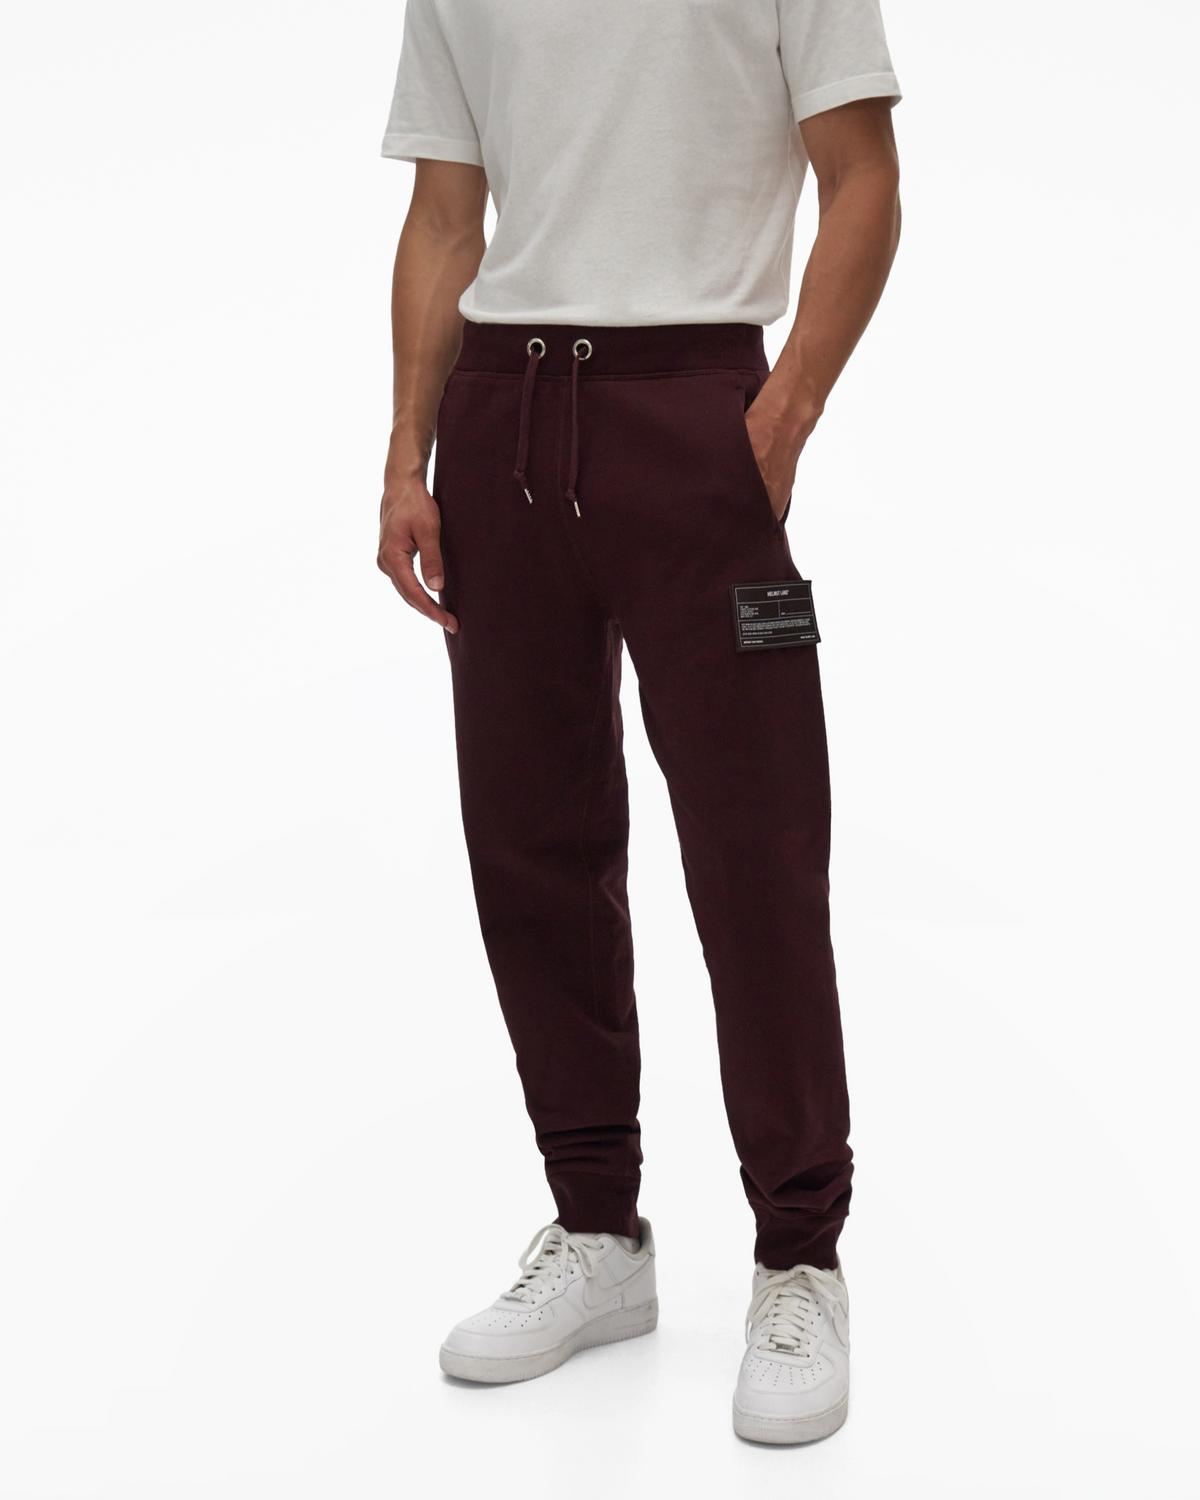 Patch Sweatpant